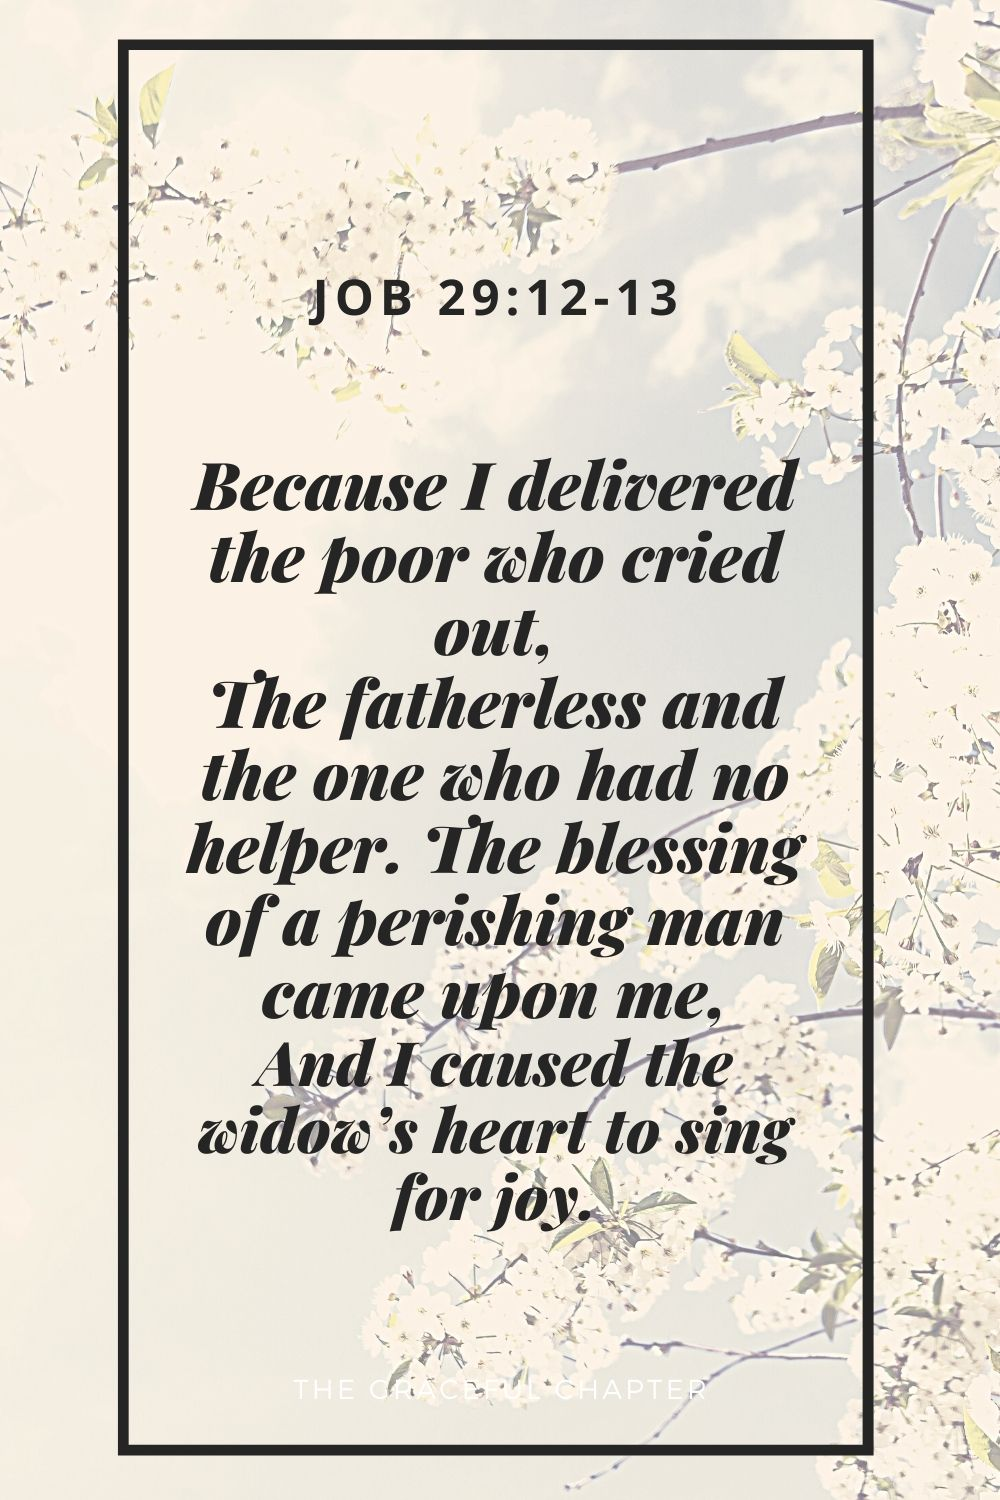 Because I delivered the poor who cried out, The fatherless and the one who had no helper. The blessing of a perishing man came upon me, And I caused the widow's heart to sing for joyBecause I delivered the poor who cried out, The fatherless and the one who had no helper. The blessing of a perishing man came upon me, And I caused the widow's heart to sing for joy. Job 29:12-13